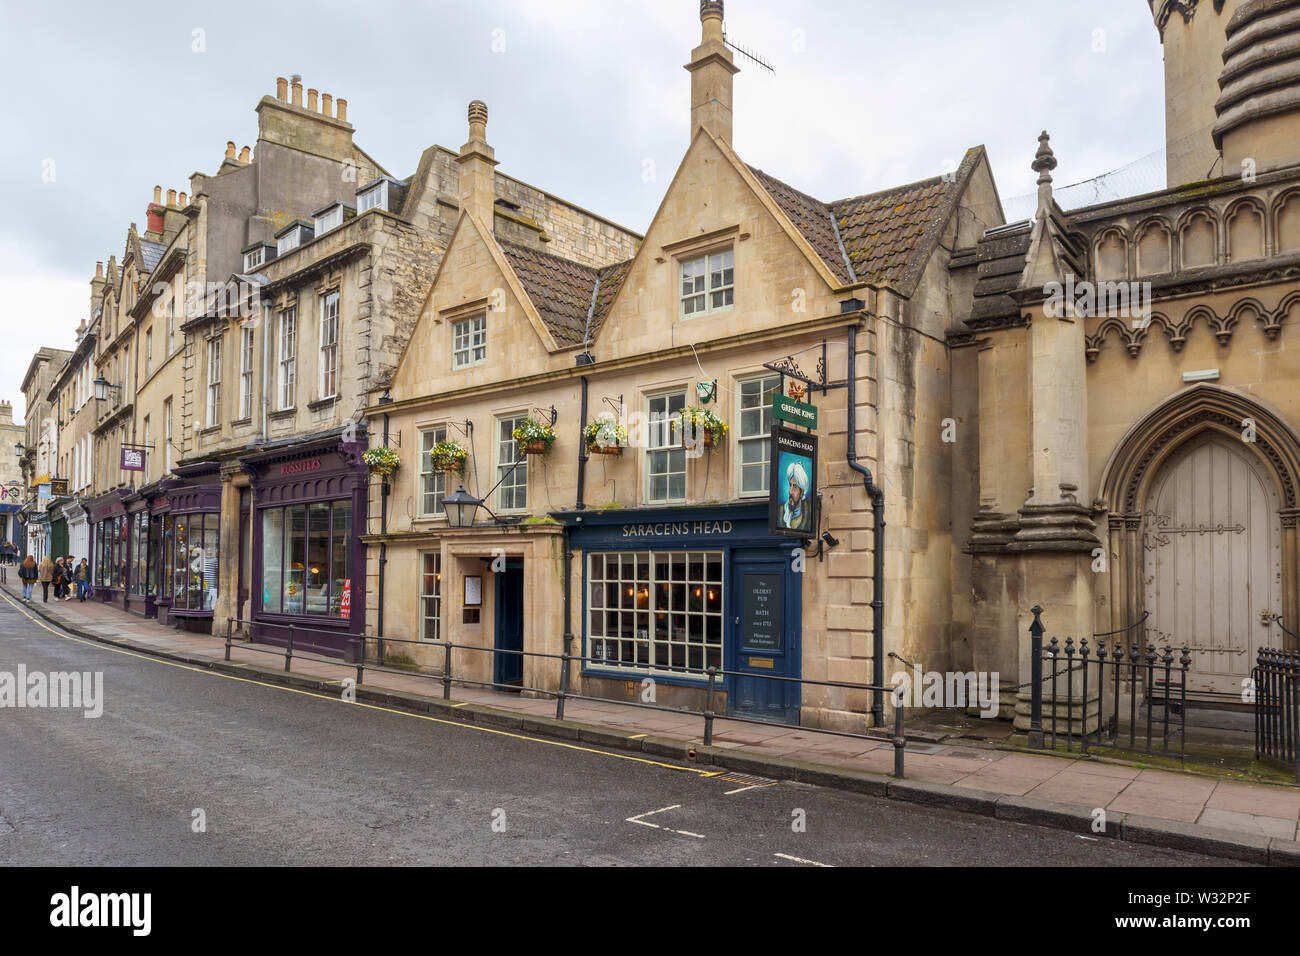 The Saracens Head, an historic Greene King pub in Broad Street in the city centre, the oldest in Bath, the largest city in Somerset, southwest England - Stock Image